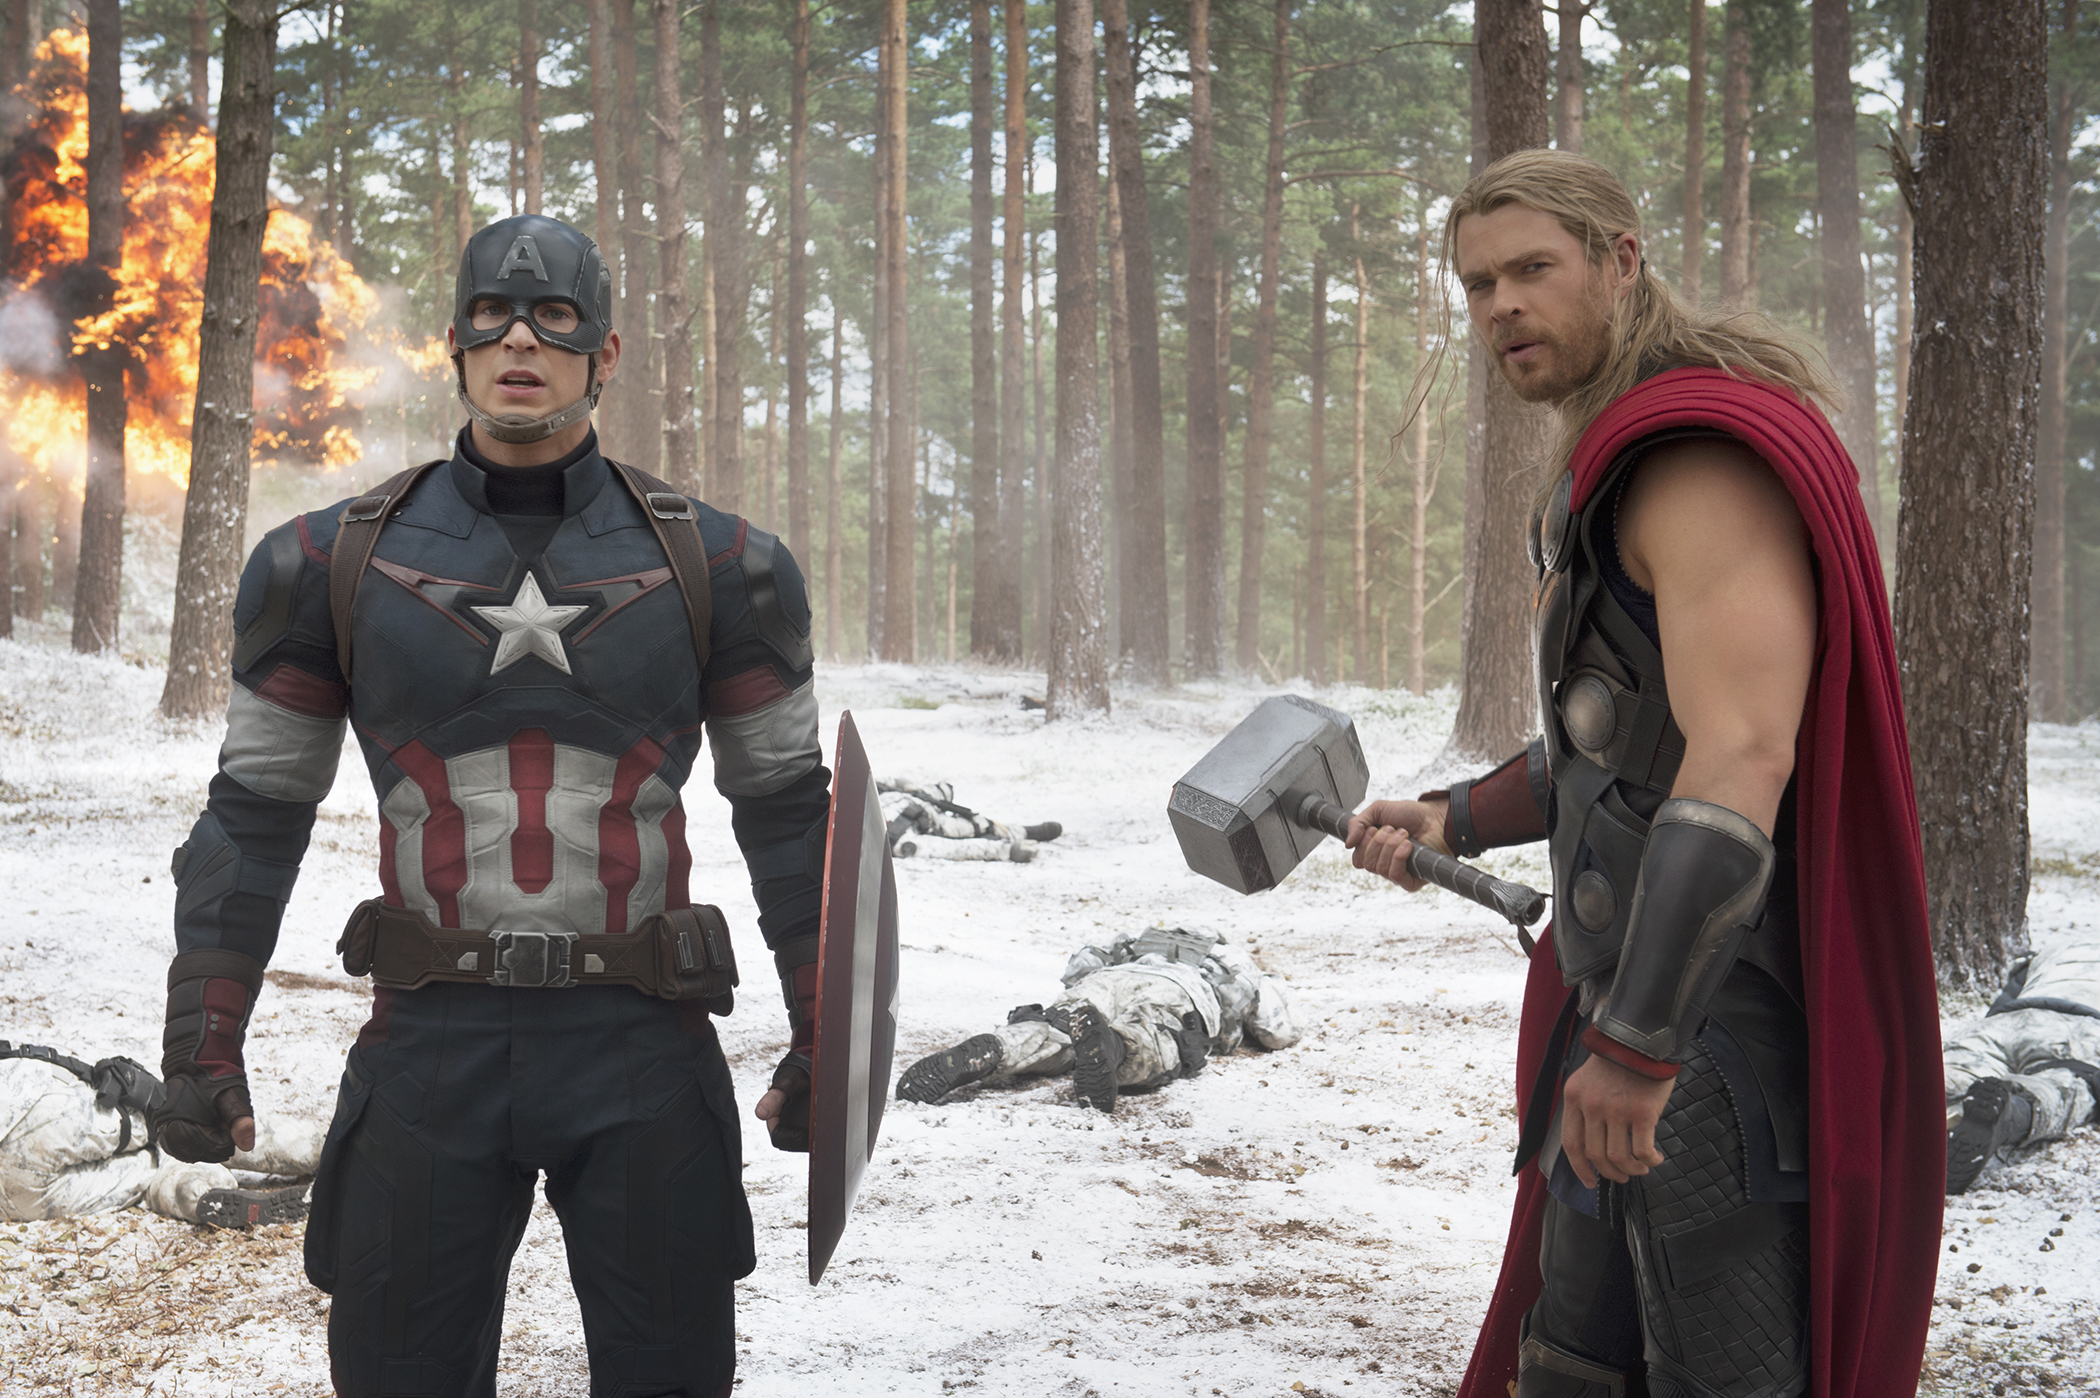 Marvel's Avengers: Age Of Ultron with Steve Rogers as Captain America and Chris Hemsworth as Thor.